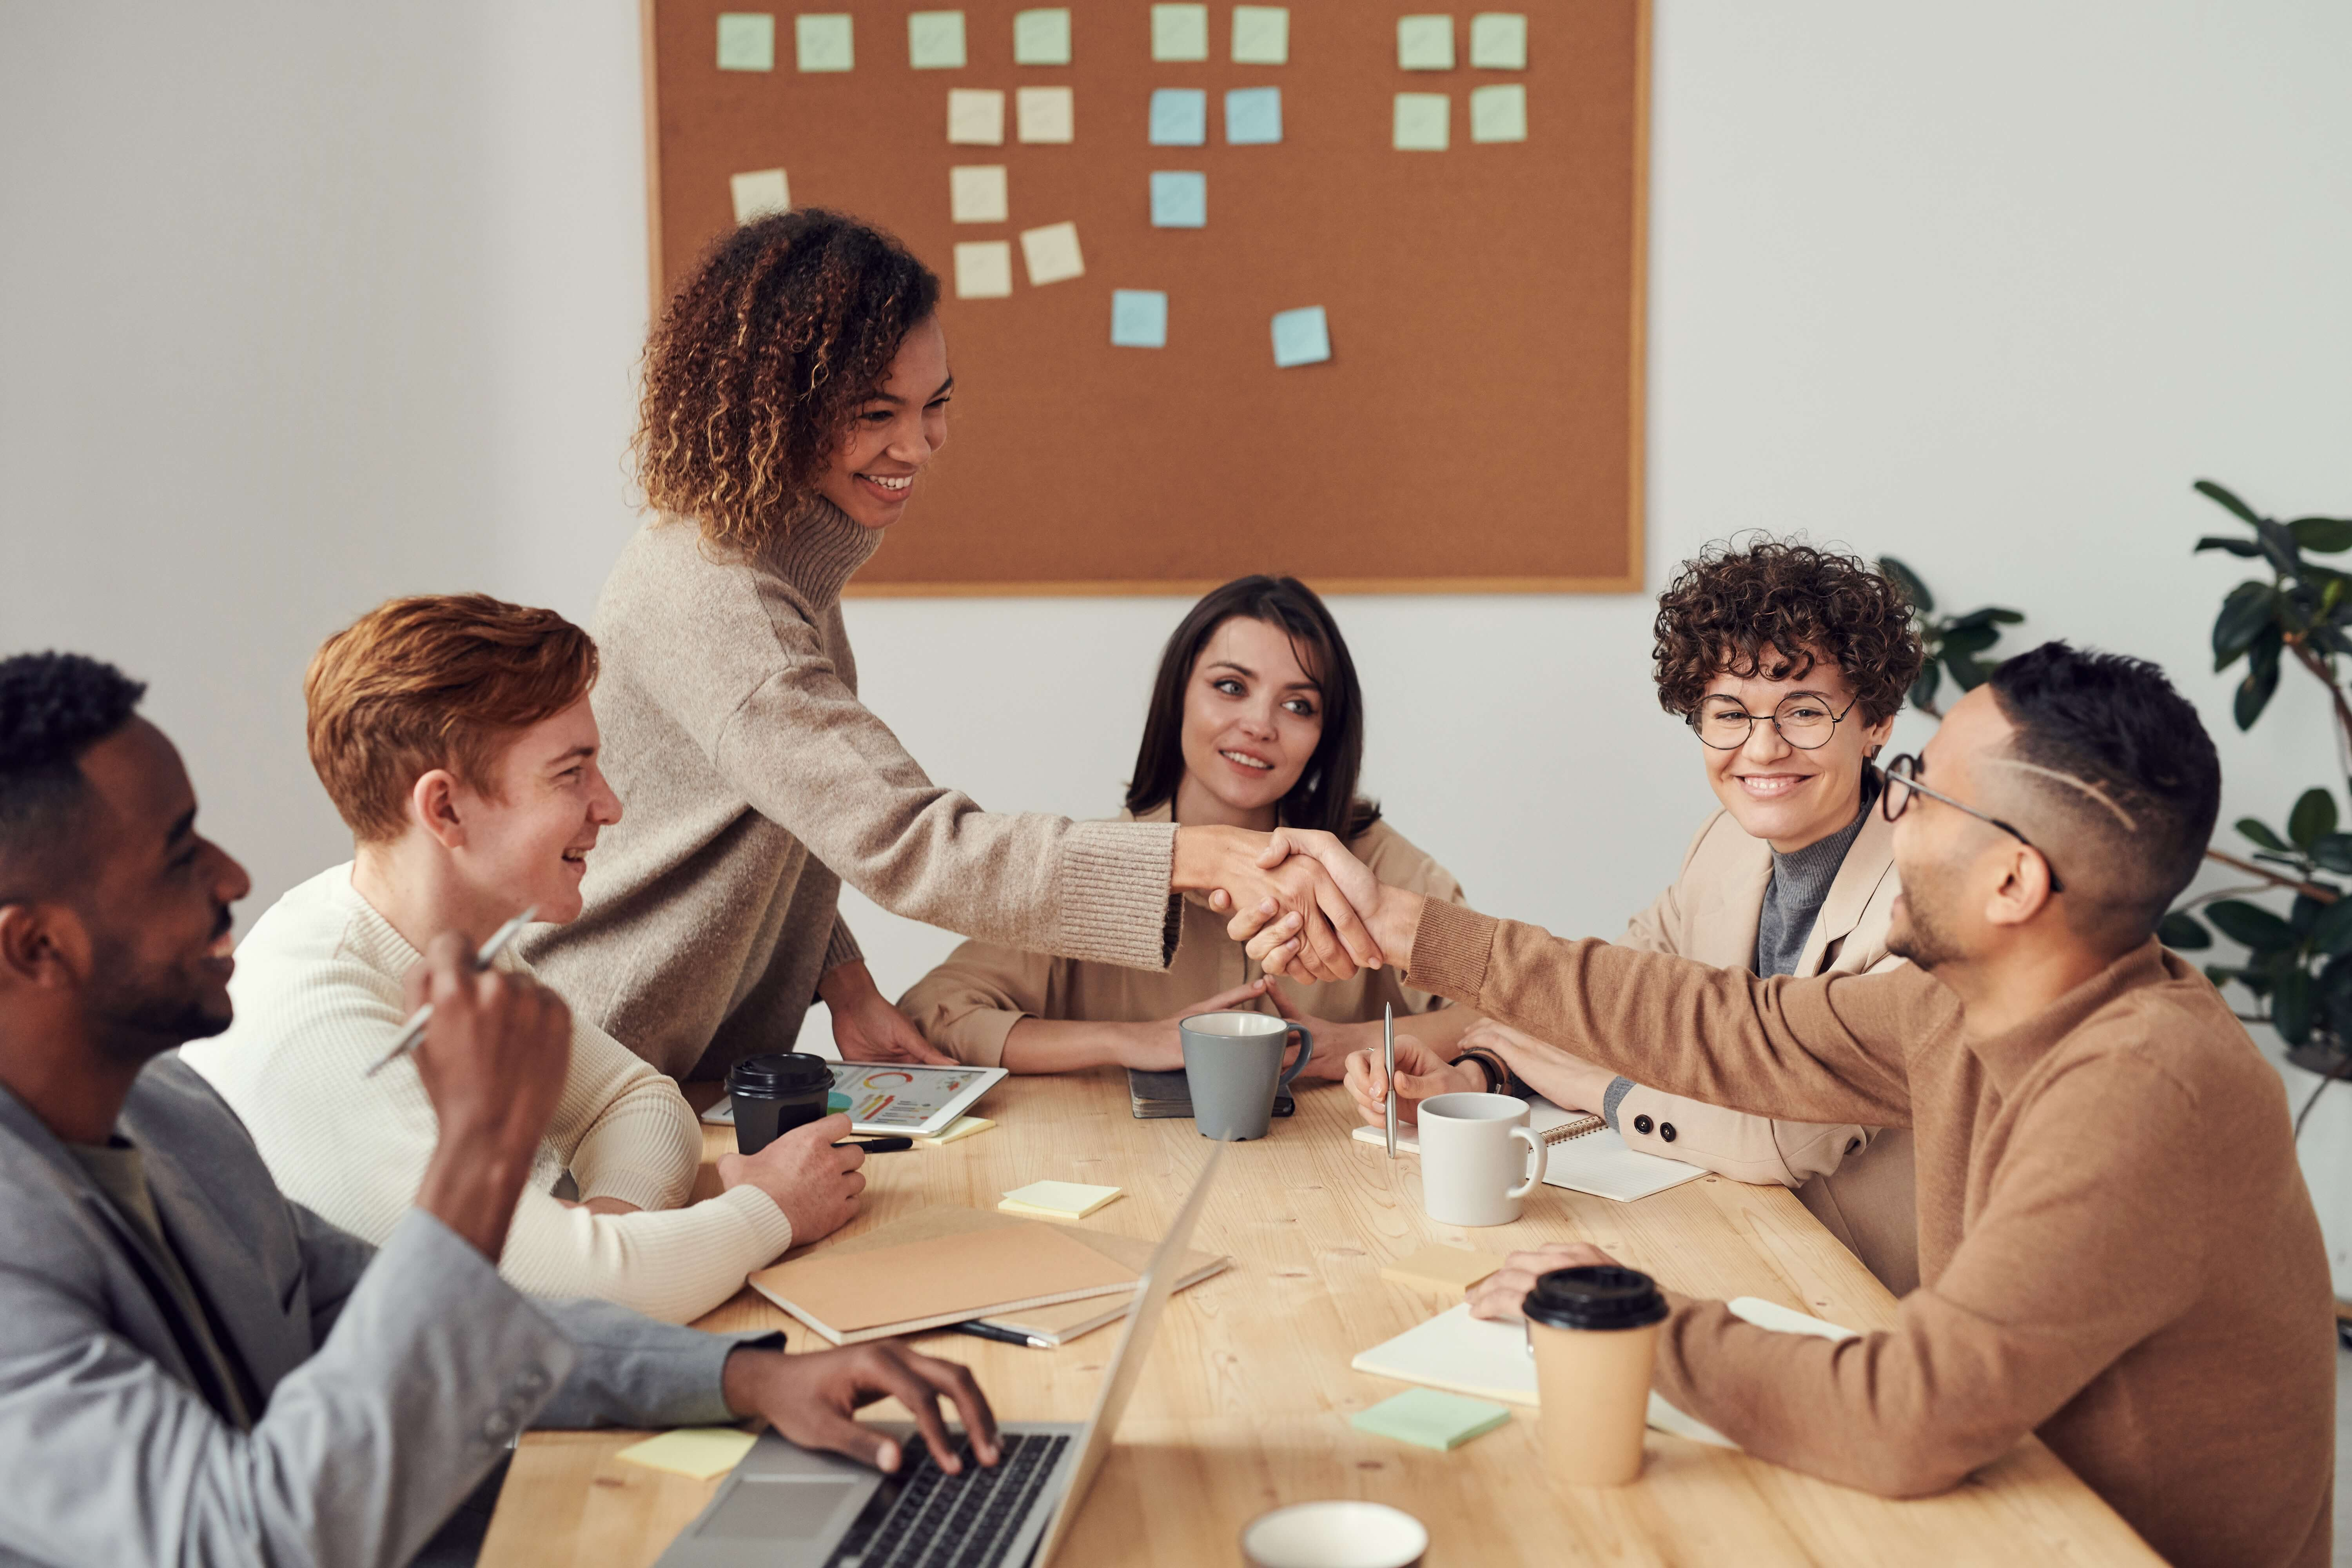 5 Ways Entrepreneurs Can Build Trust With Their Teams